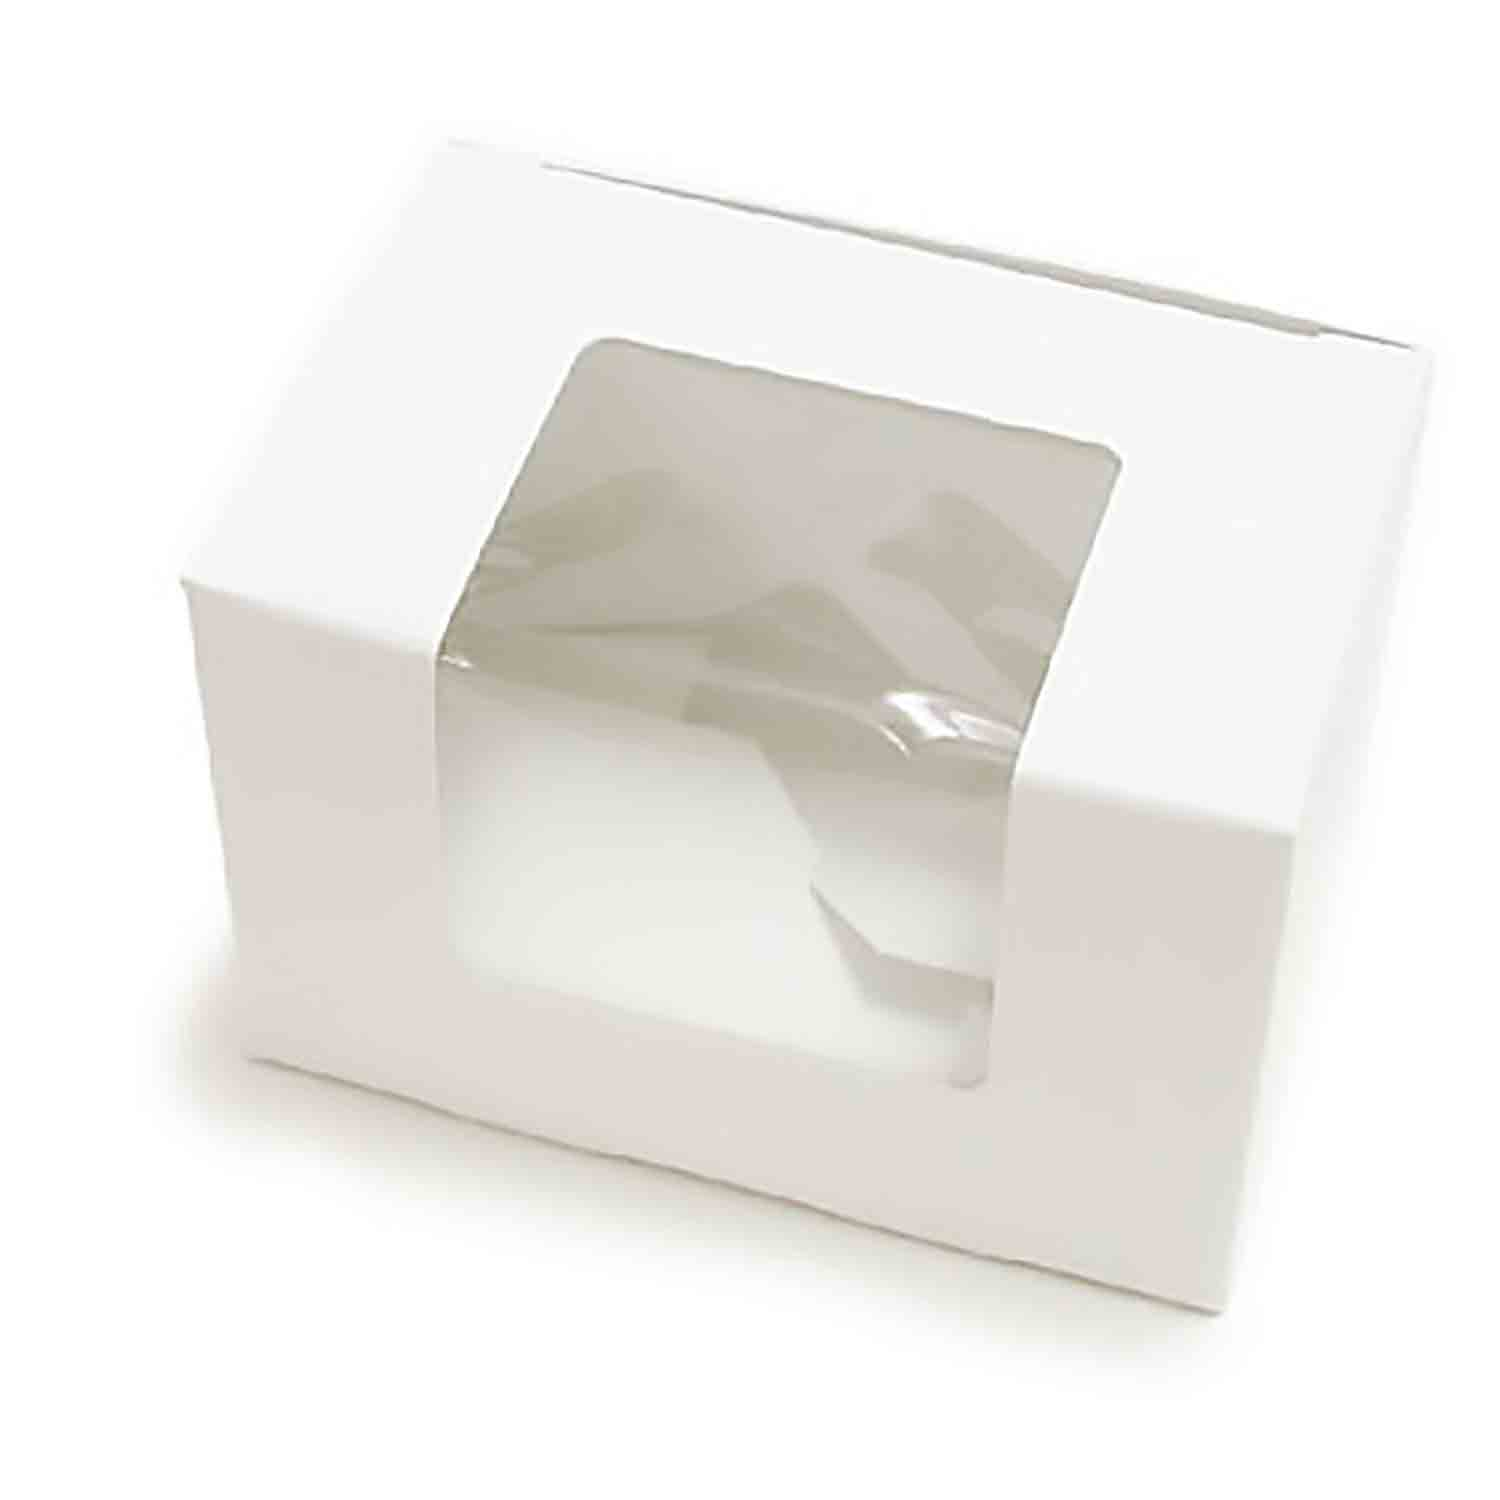 1 lb. White Egg Candy Box with Window